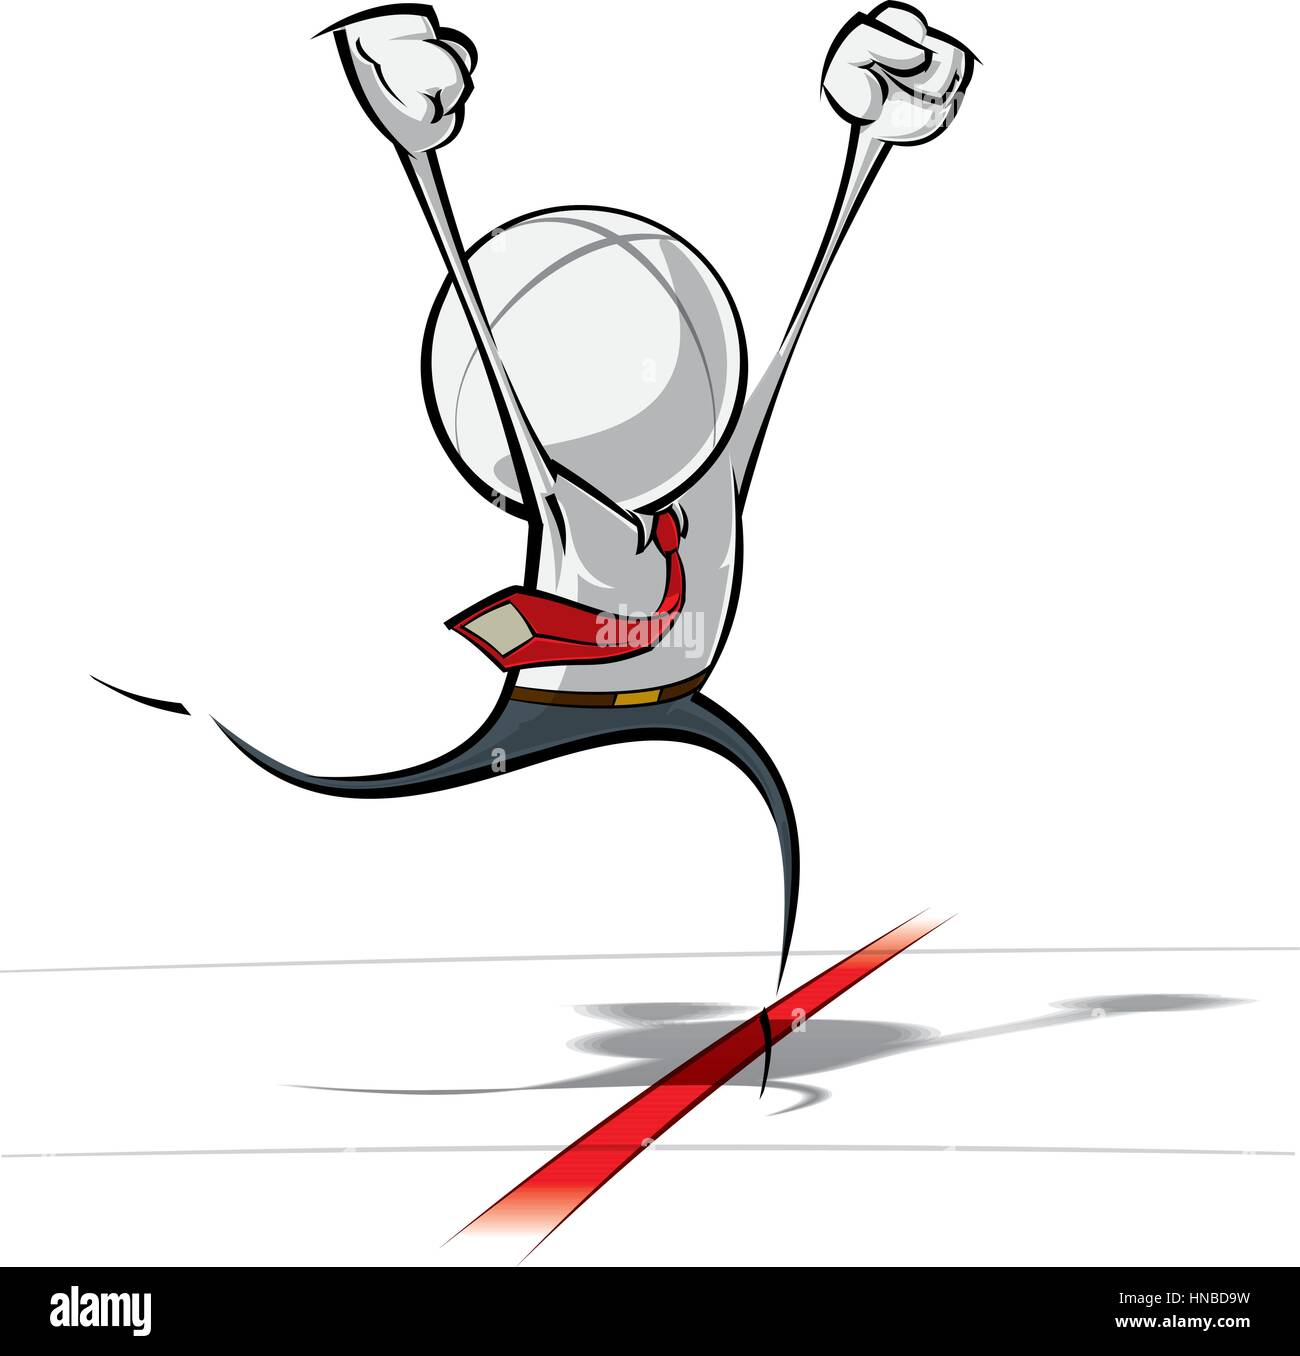 Sparse vector illustration of a of a generic Business cartoon character winning a race - succeeding. - Stock Image